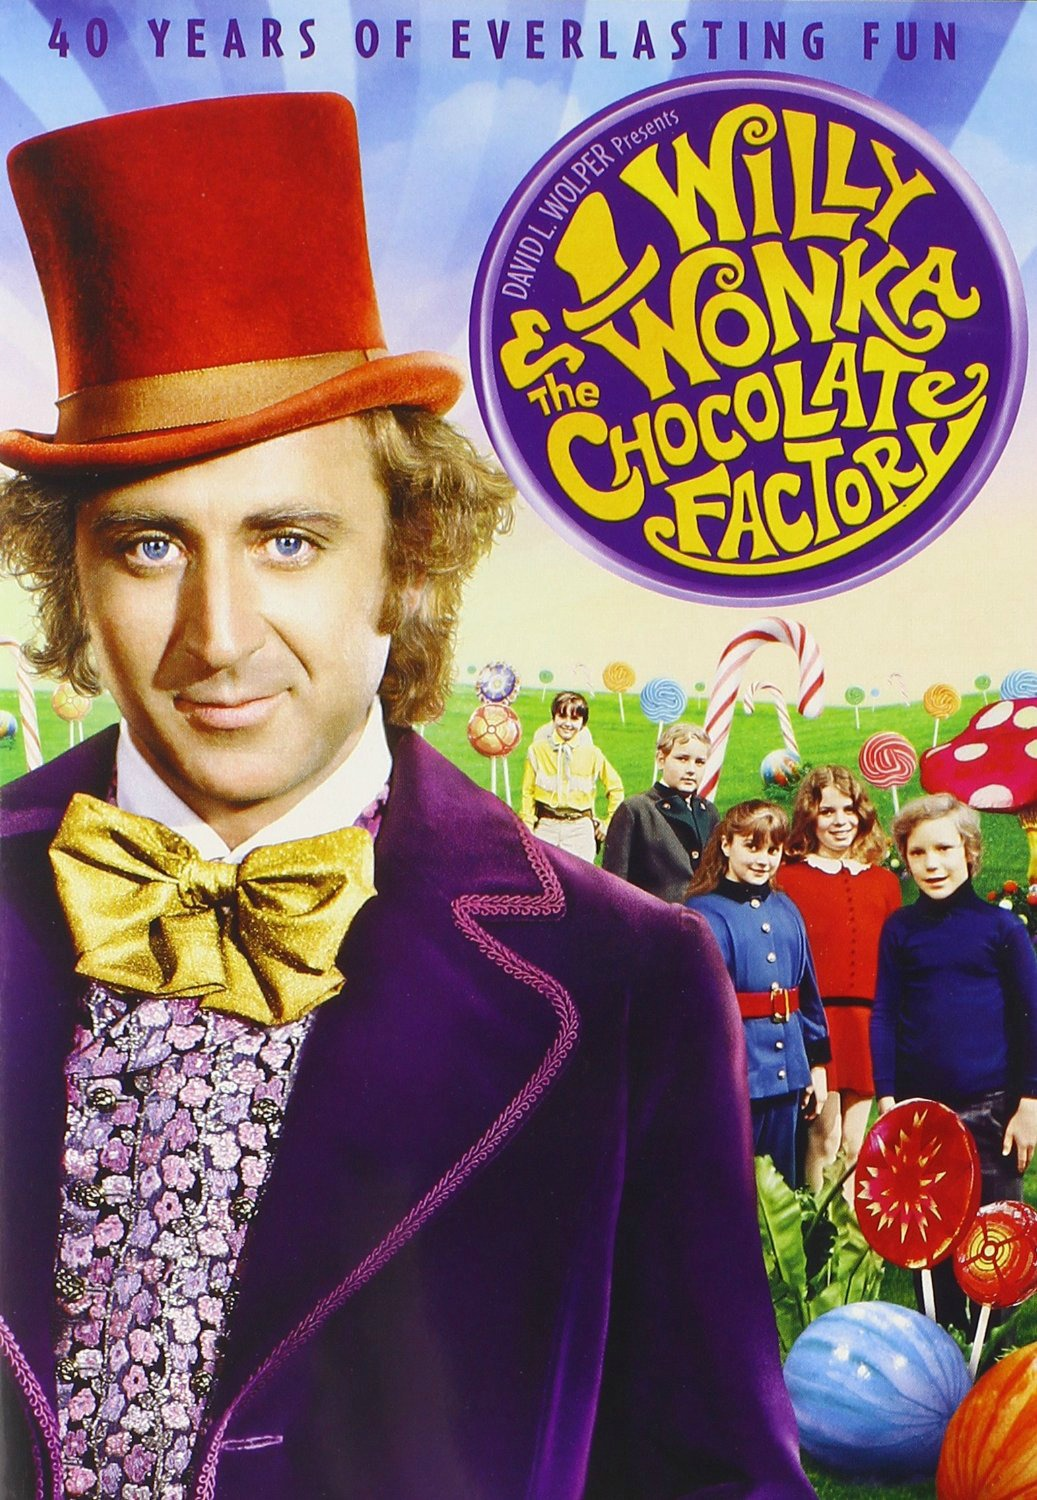 You can order willy wonka and the chocolate factory on dvd for only